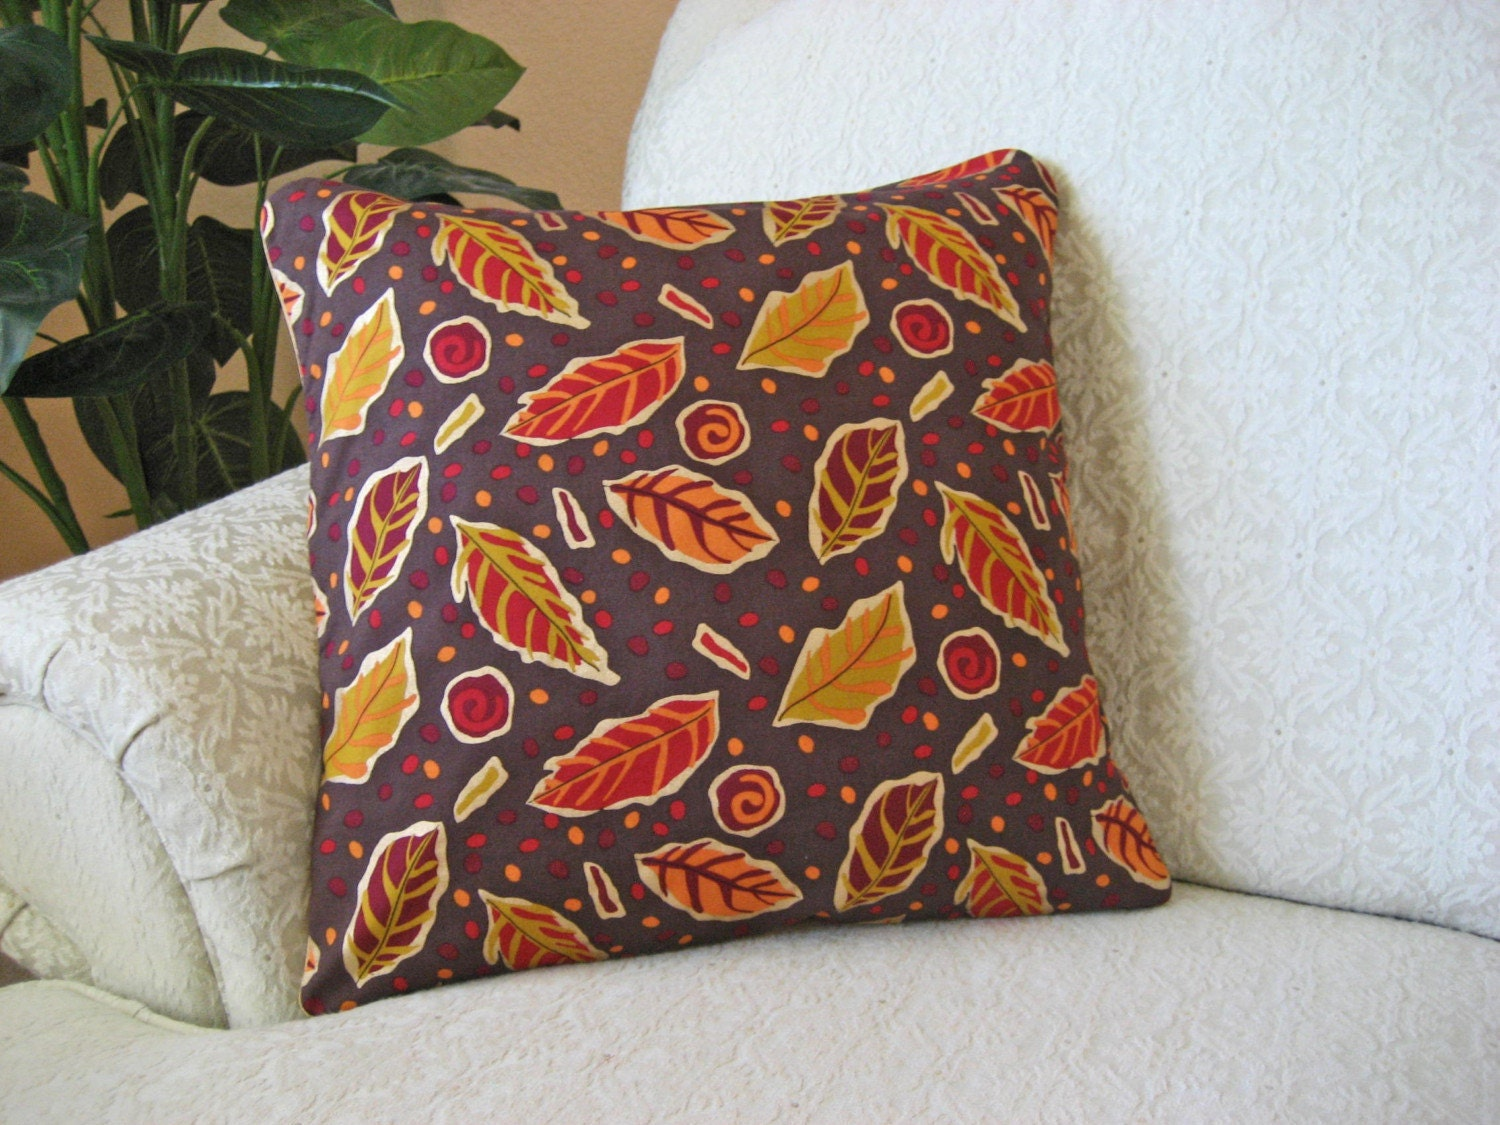 Autumn Throw Pillow Covers : Fall Autumn Throw Pillow Cover Mustard by asmushomeinteriors